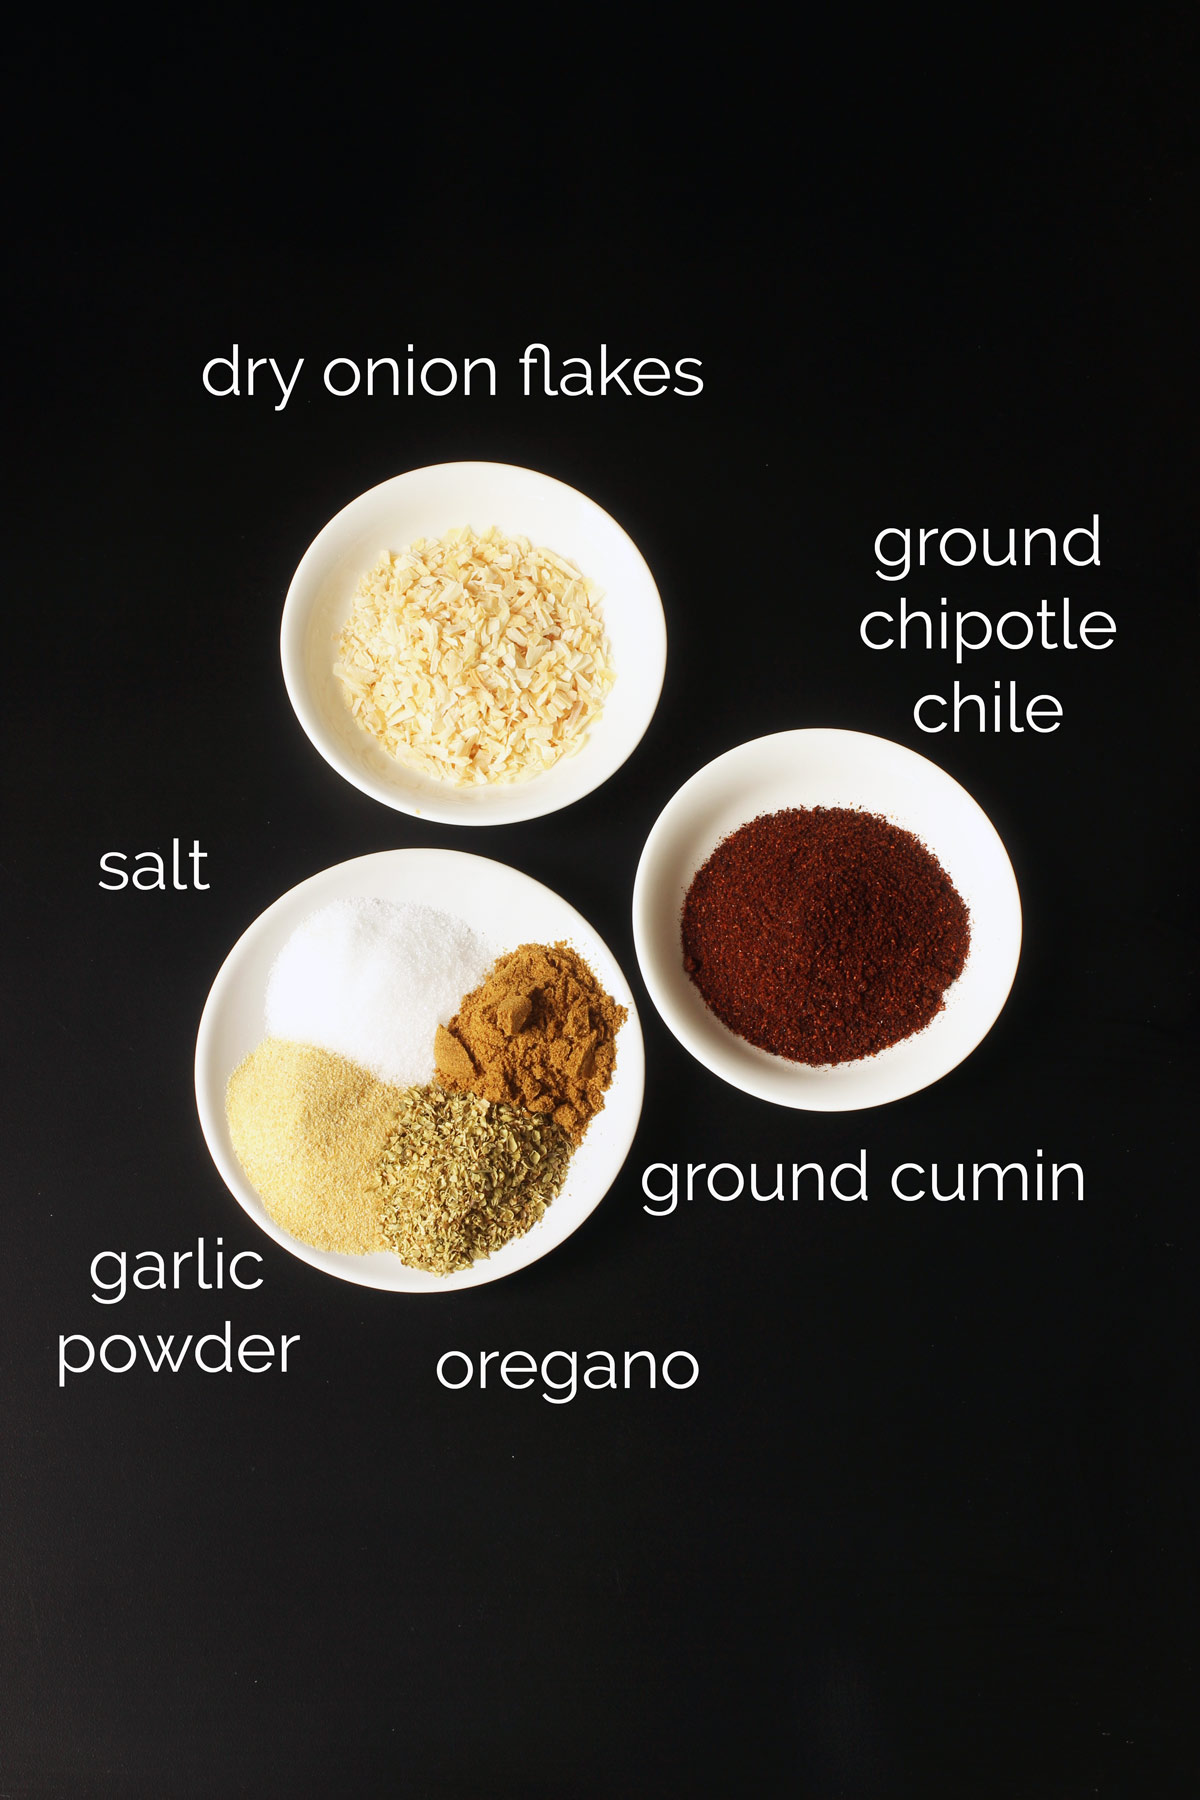 ingredients for chipotle seasoning in small white dishes on black table top.